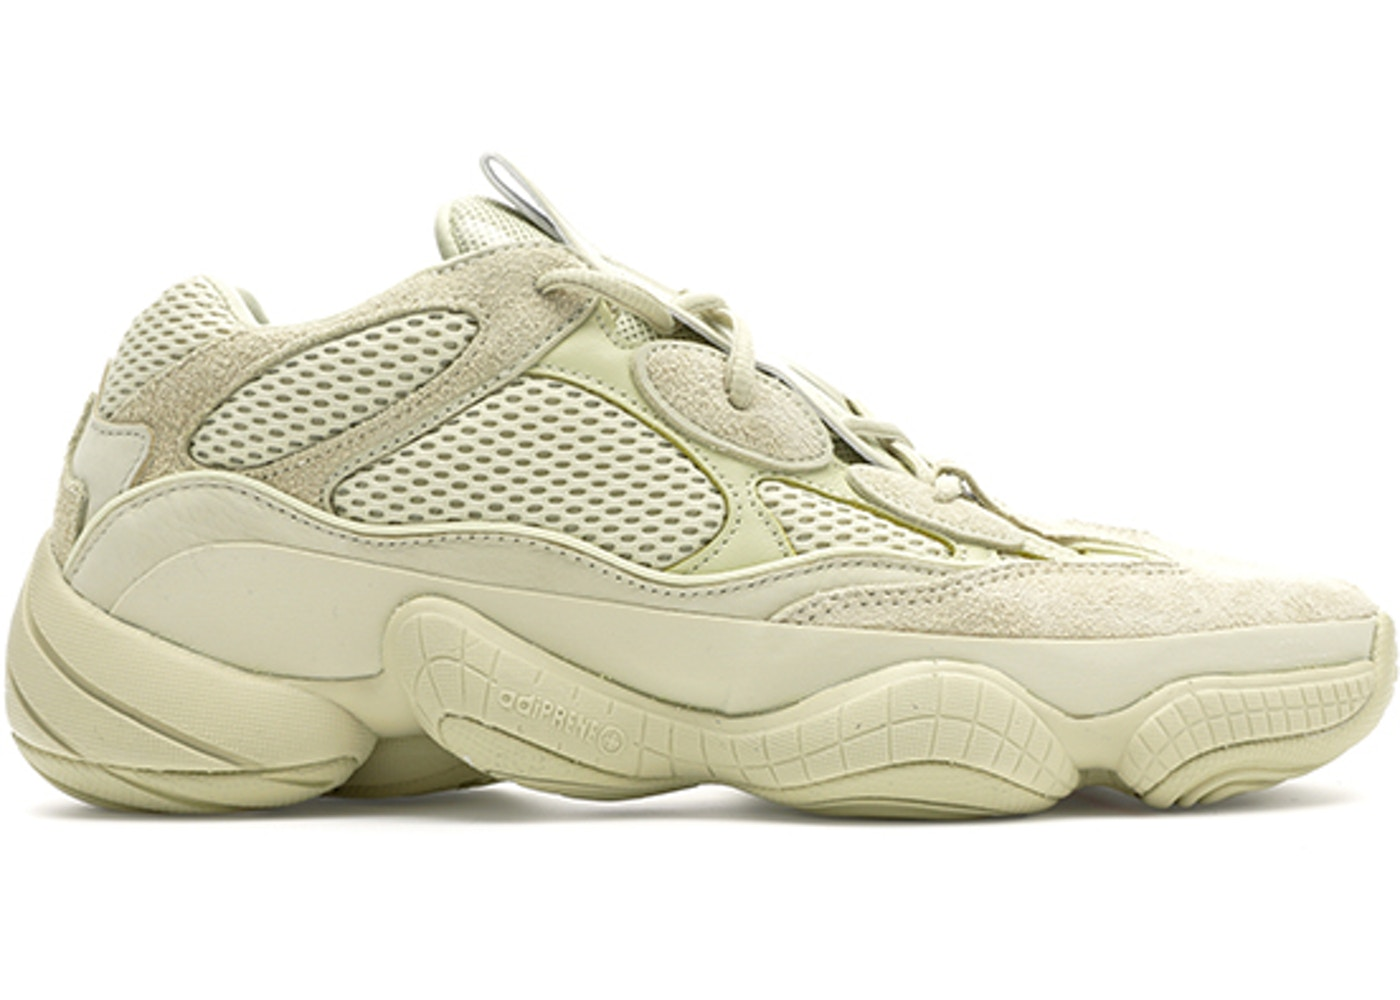 new arrival 7a4df 38f1e adidas Yeezy 500 Super Moon Yellow